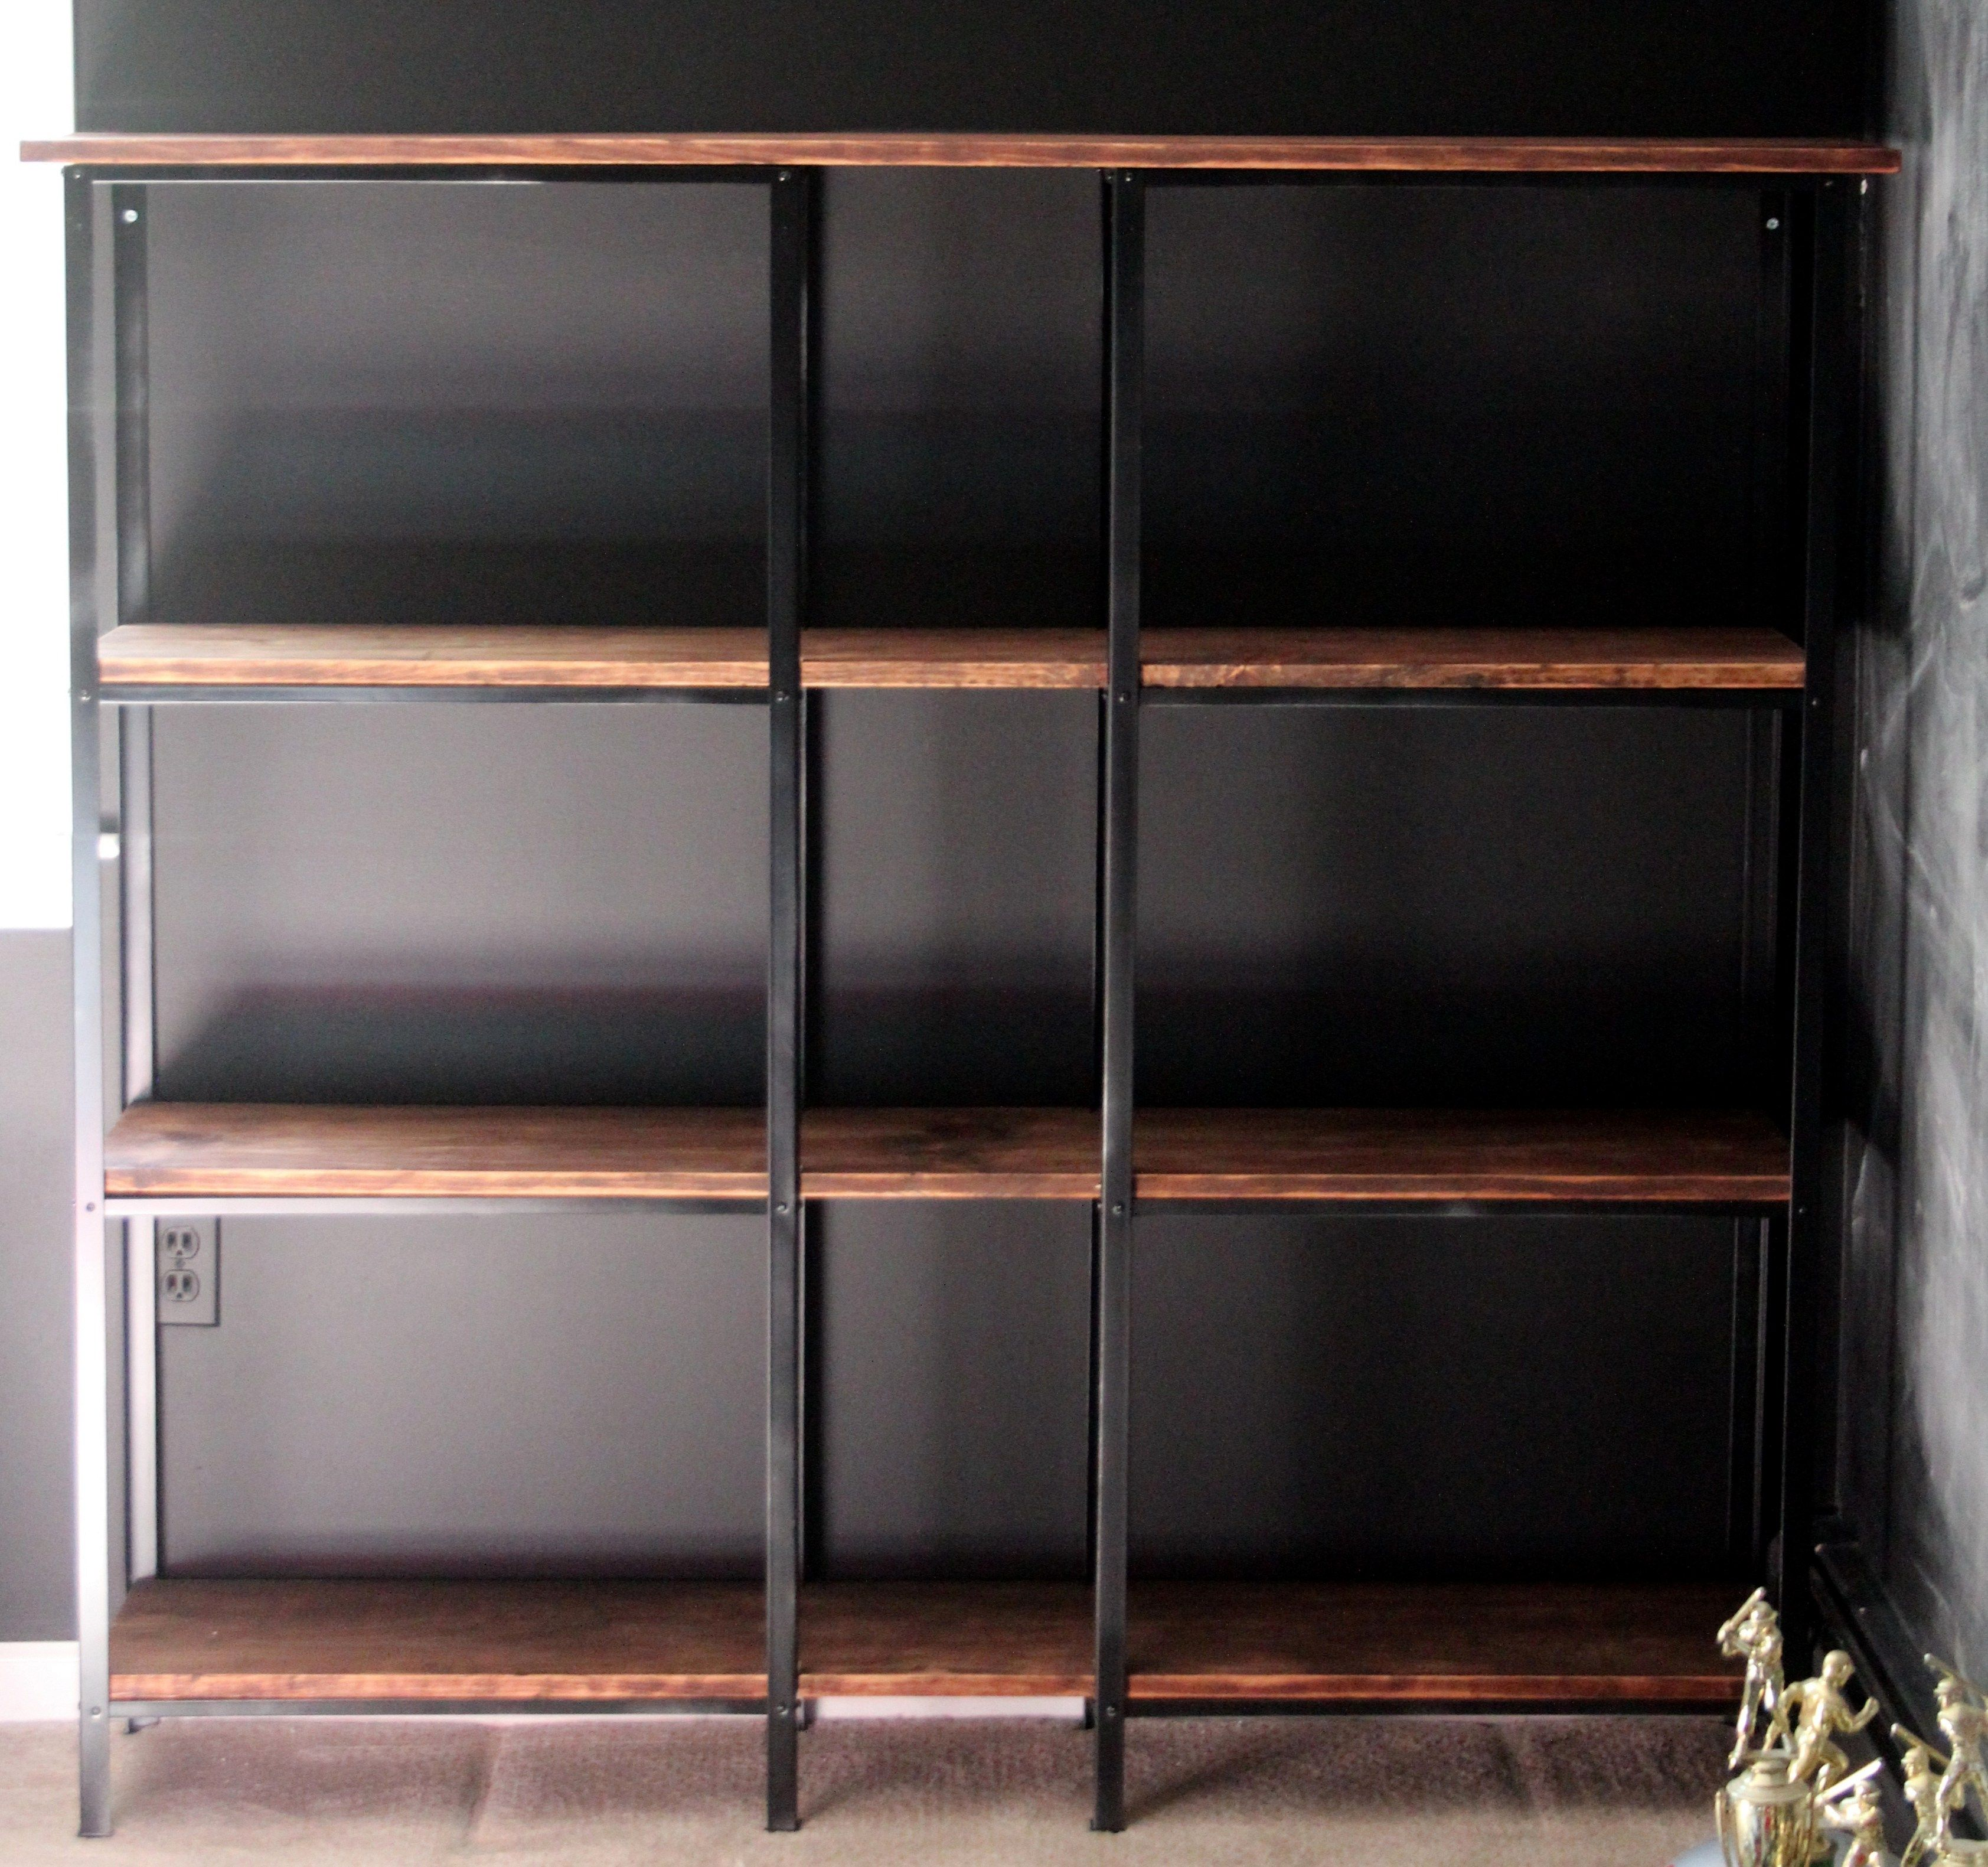 Cheap metal shelves turned into high-end bookcase.